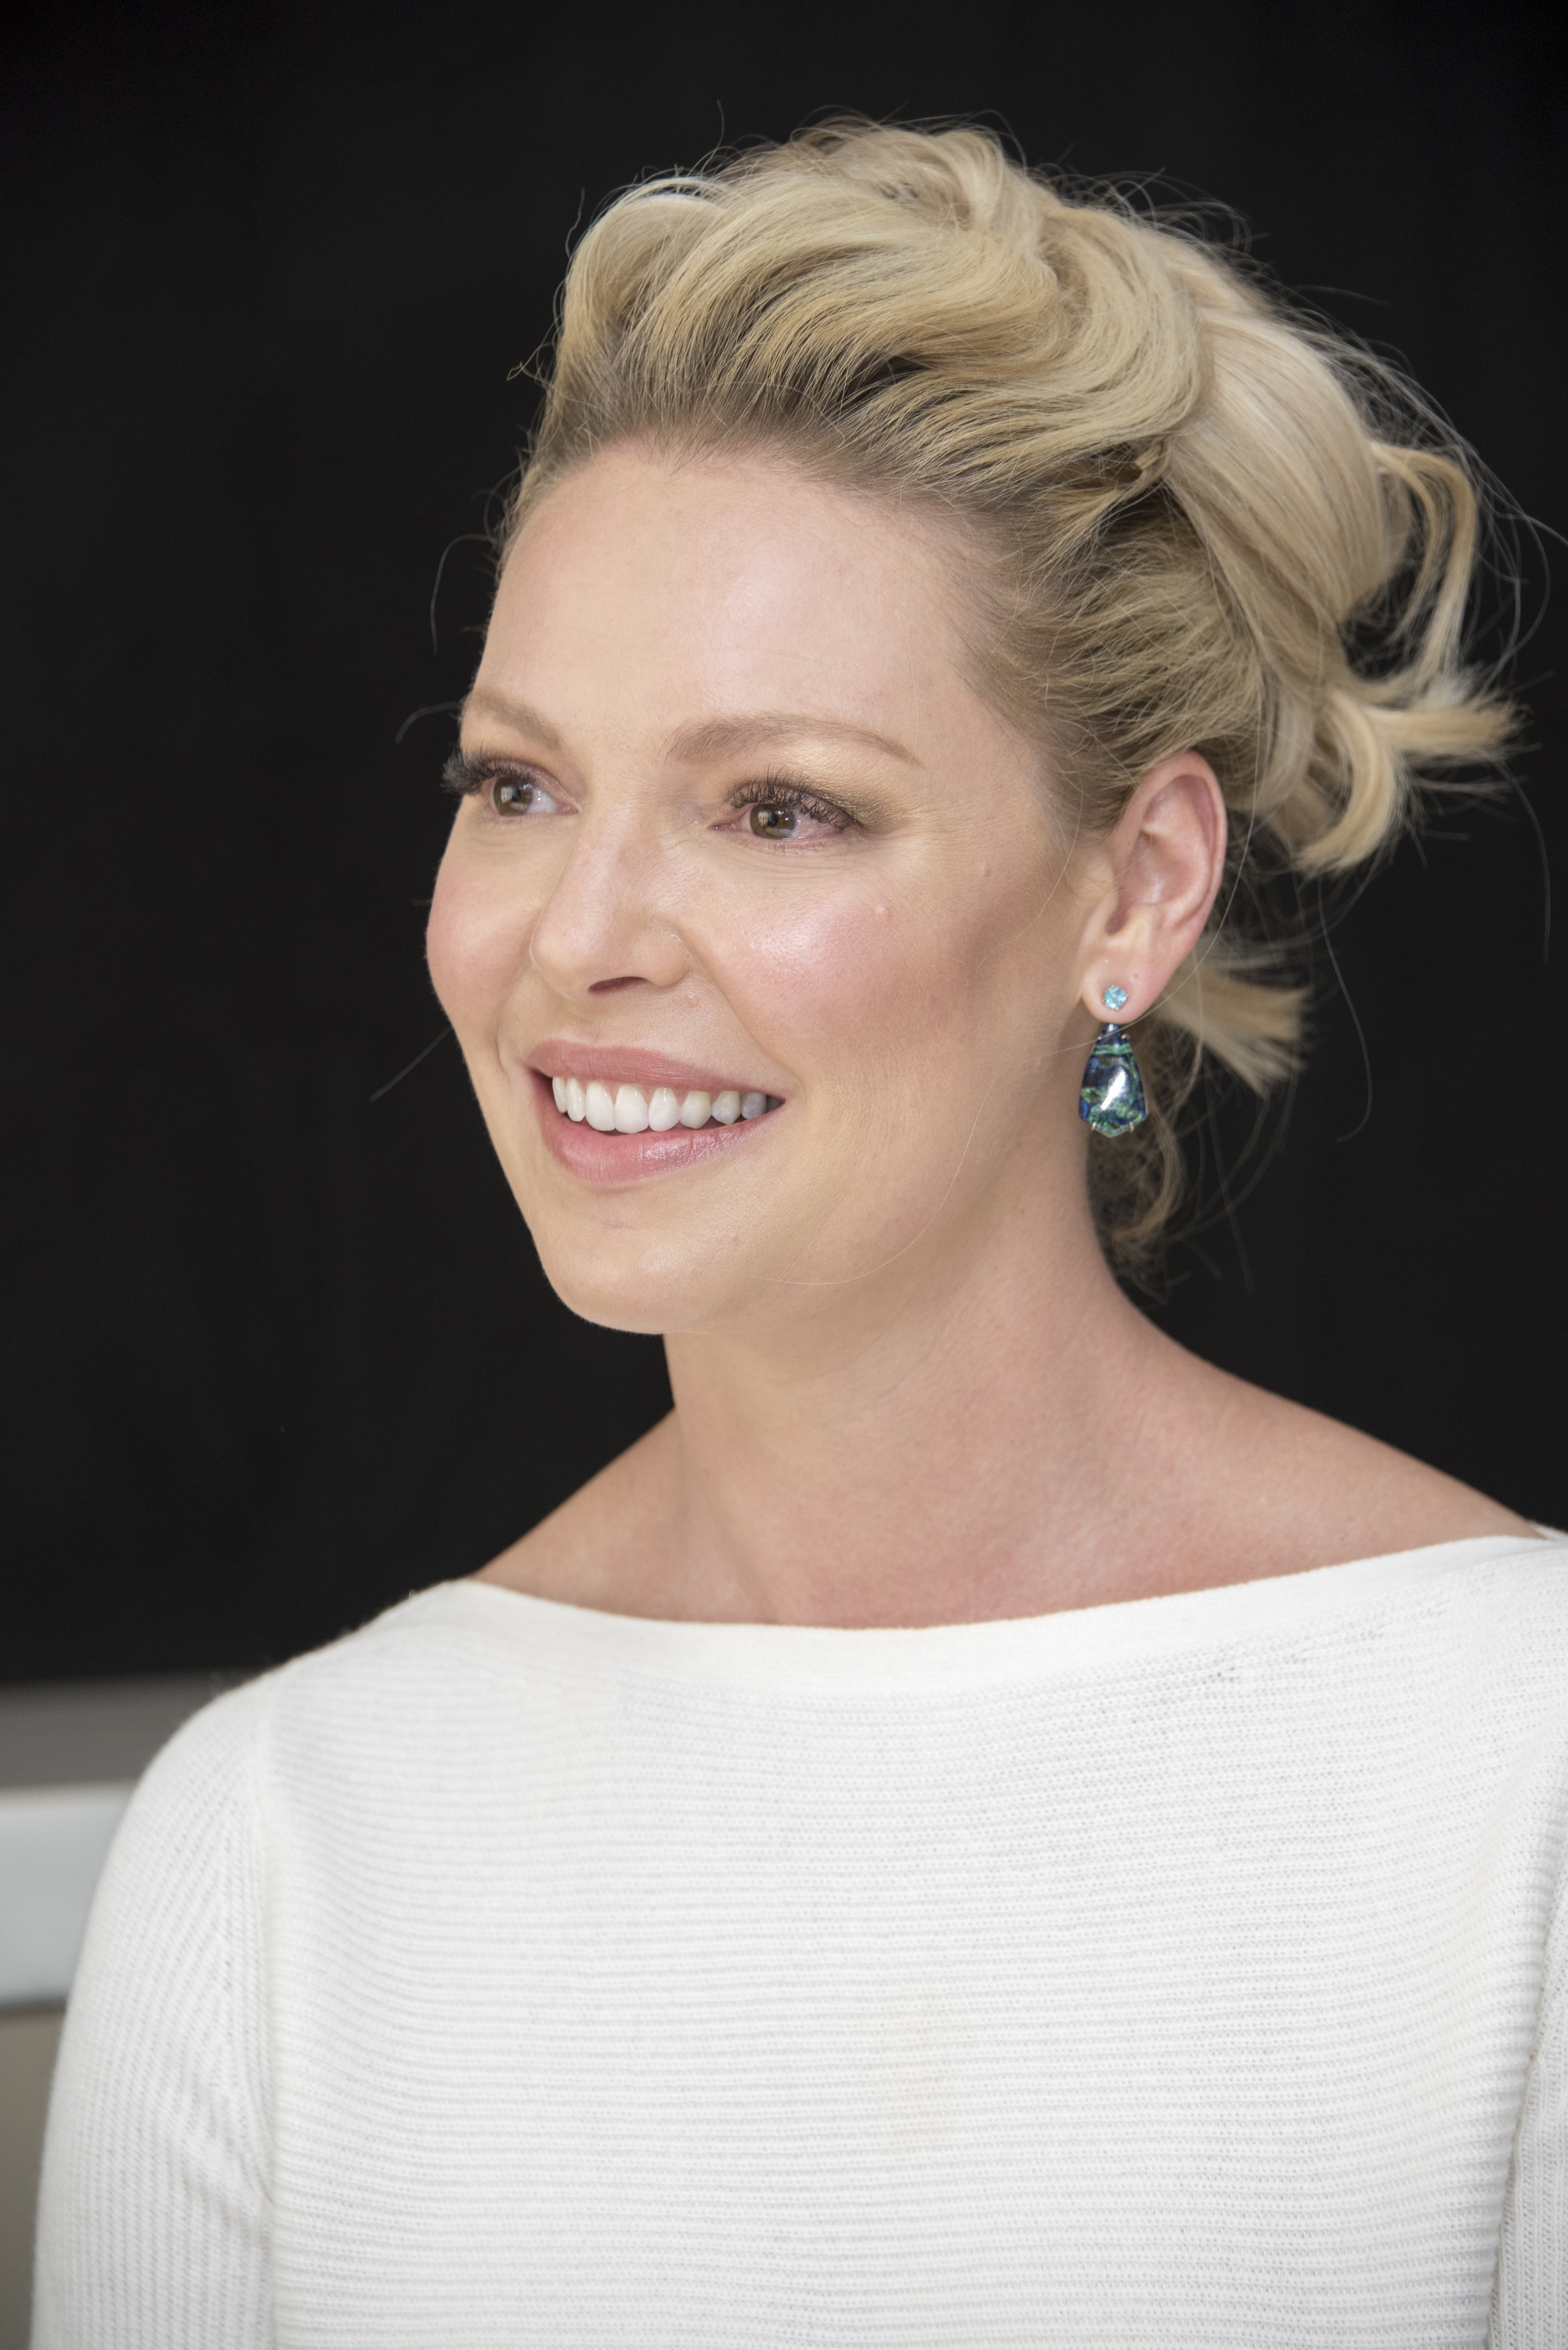 """Katherine Heigl smiles in a white outfit at the """"Suits"""" Press Conference at the Langham Hotel on July 13, 2018 in New York City"""